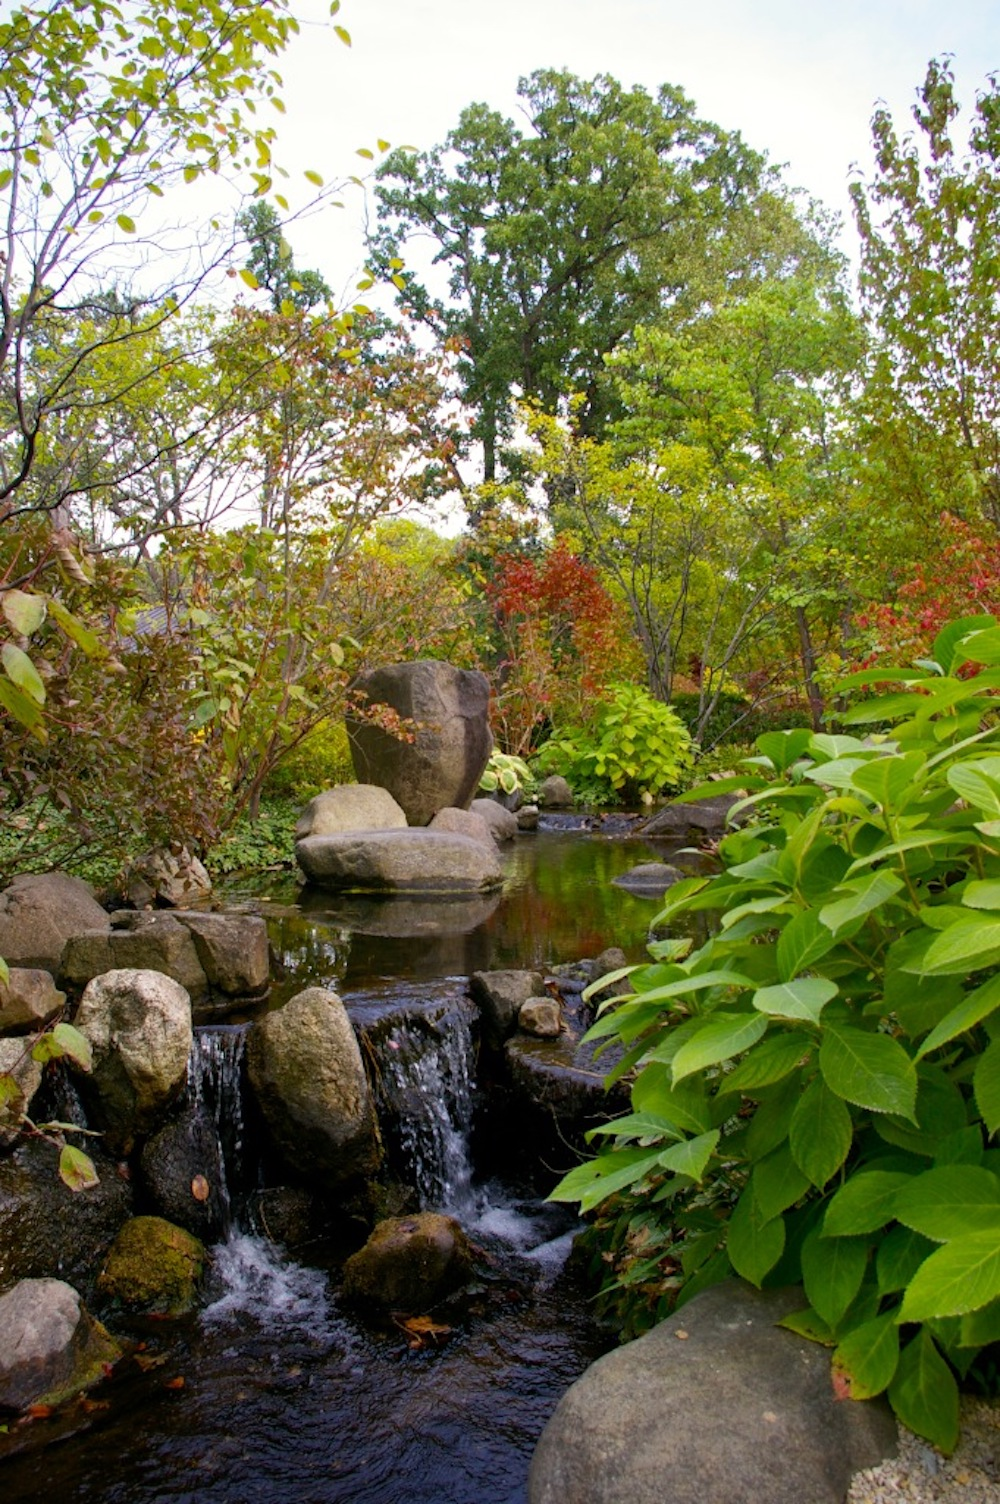 Find Your Zen At Rockford's Anderson Japanese Gardens